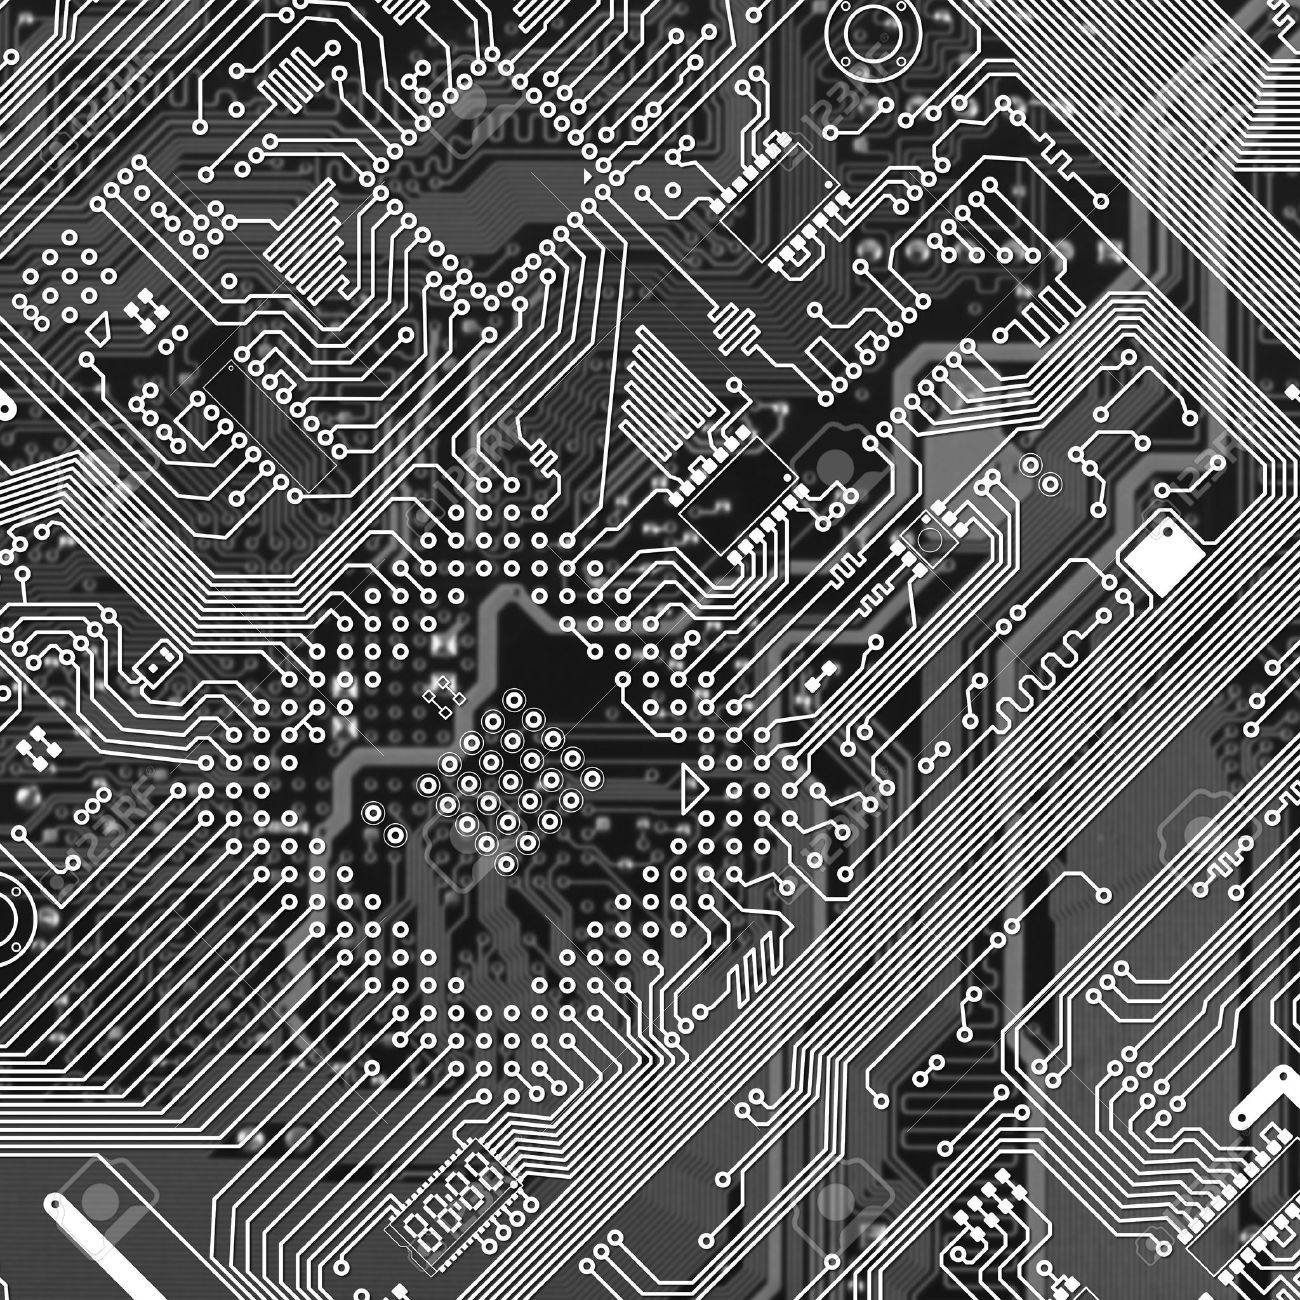 Printed monochrome industrial circuit board graphical texture Stock Photo - 6354083